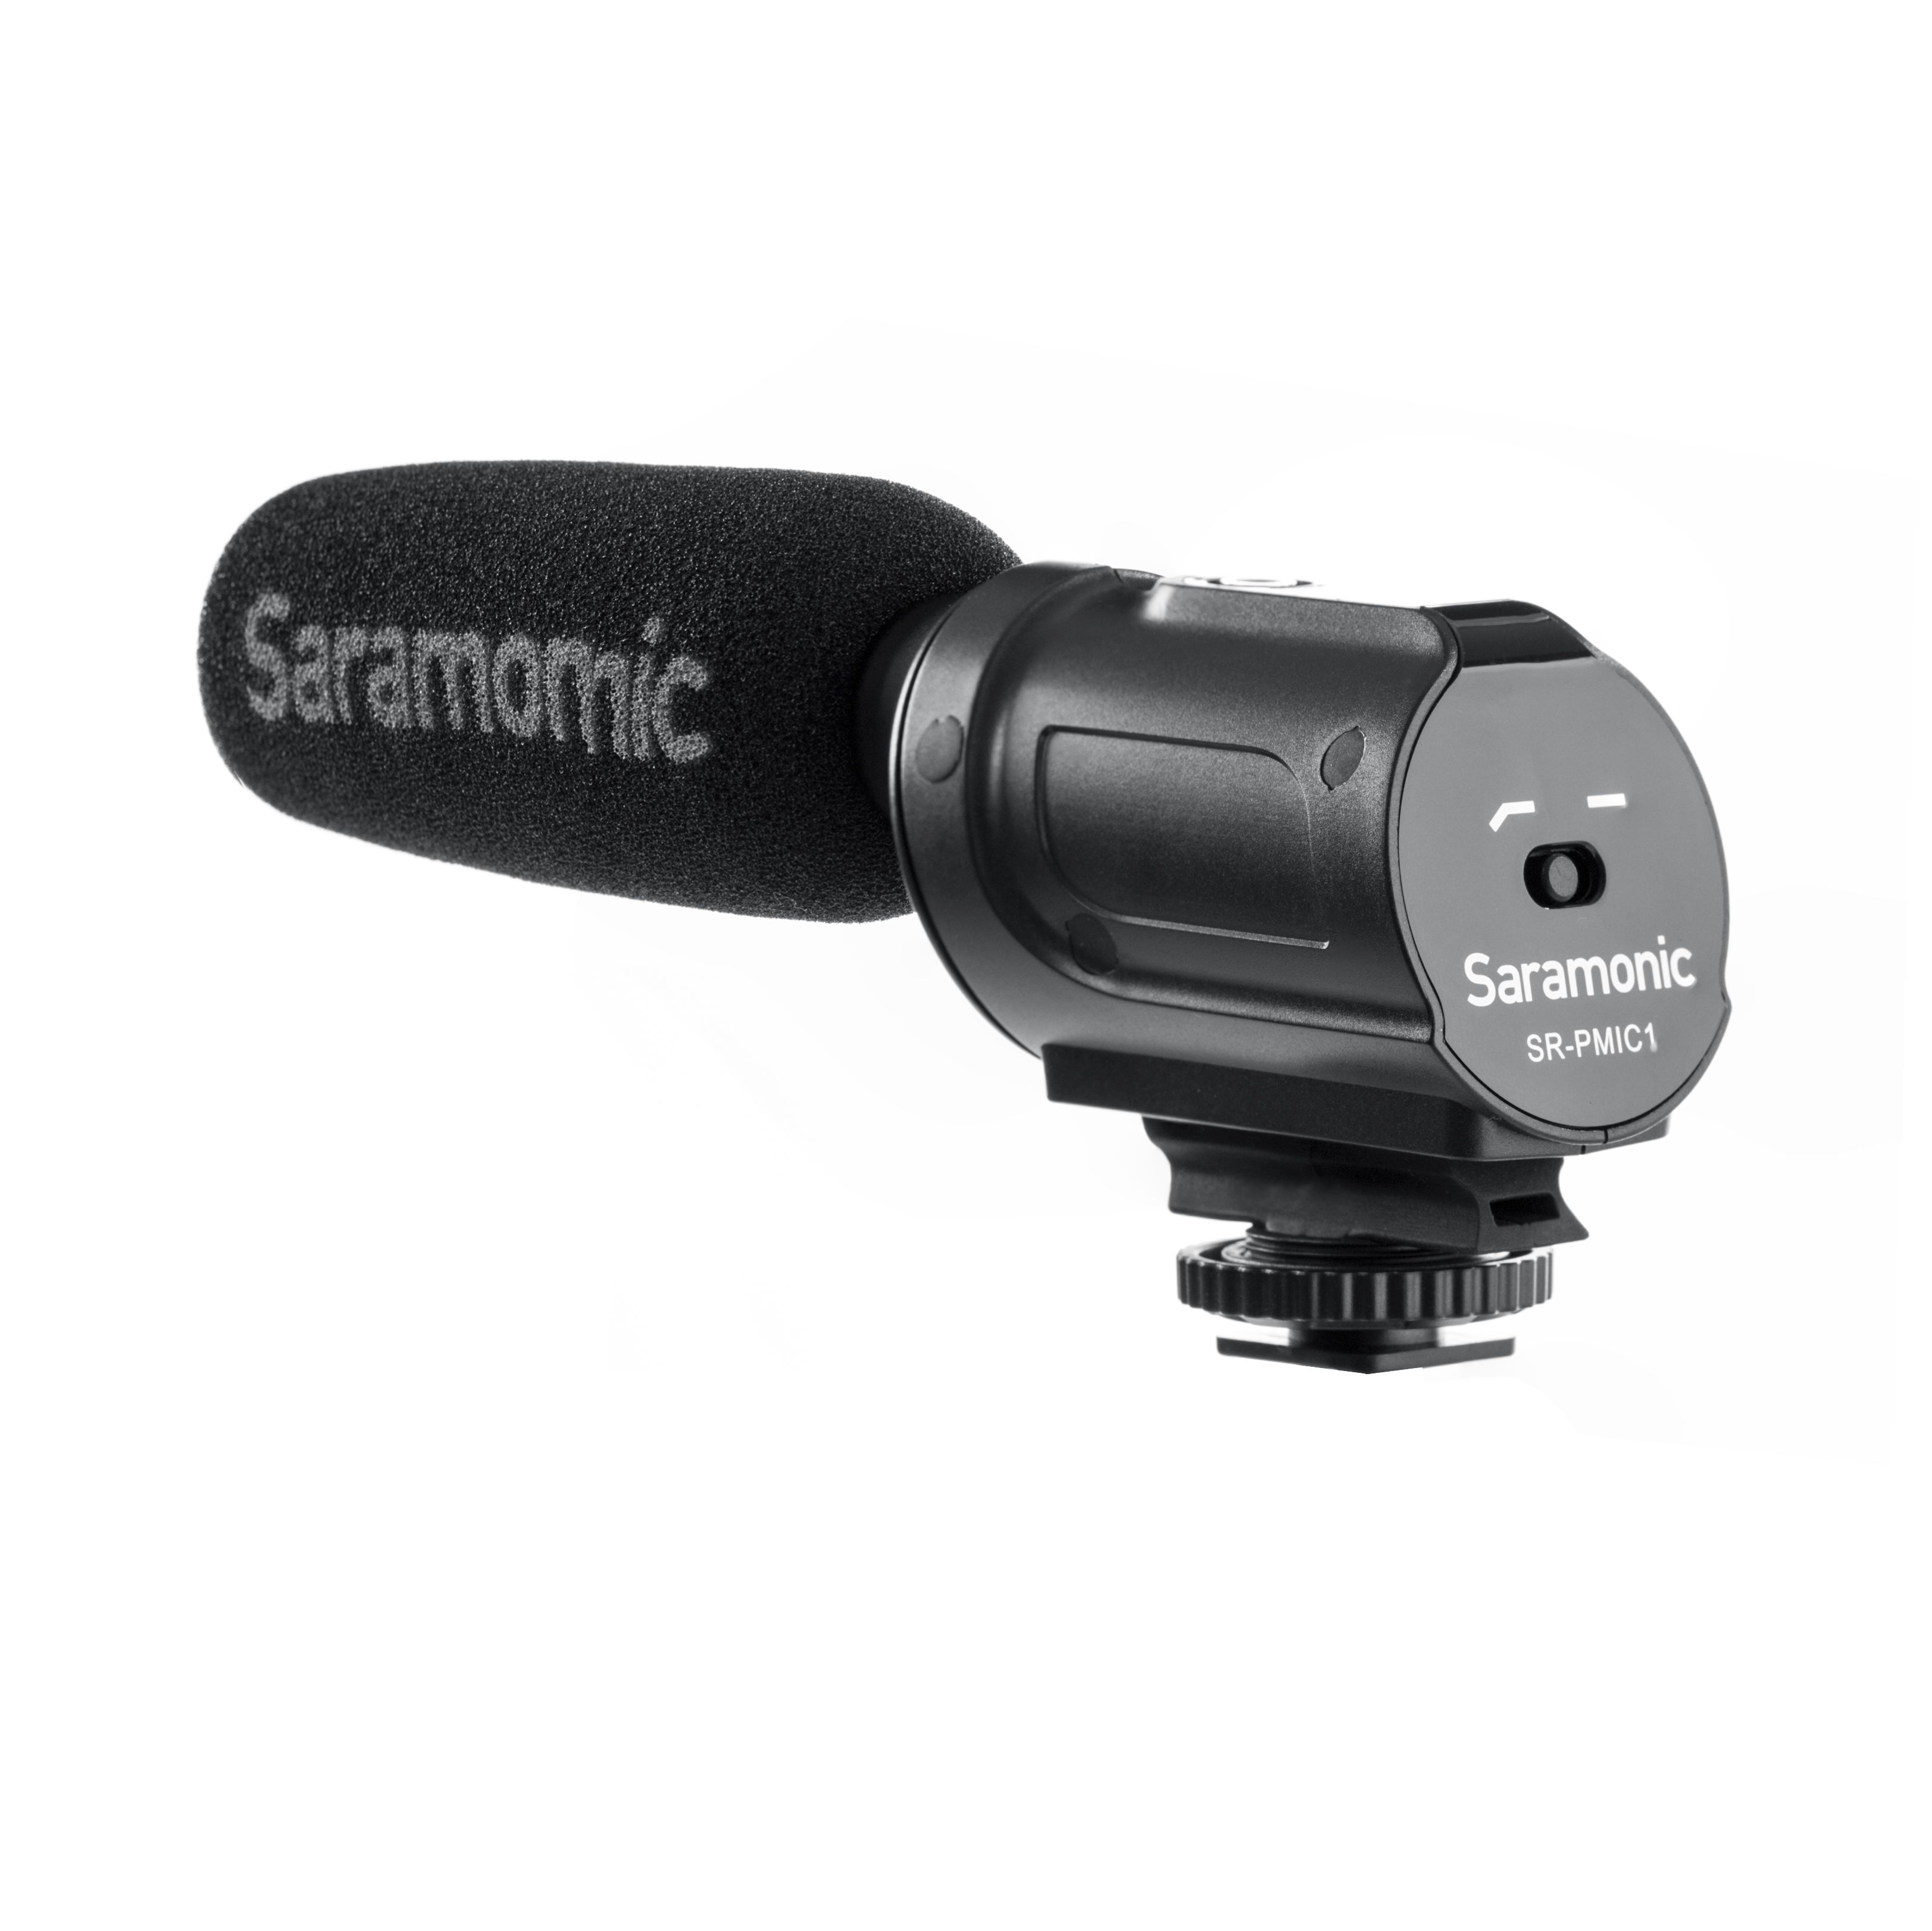 Https Www Pinterest Com Dsqninvestment Saramonic Sr Pmic1 Super Cardioid Unidirectional C With Images Dslr Camera Microphone Microphones